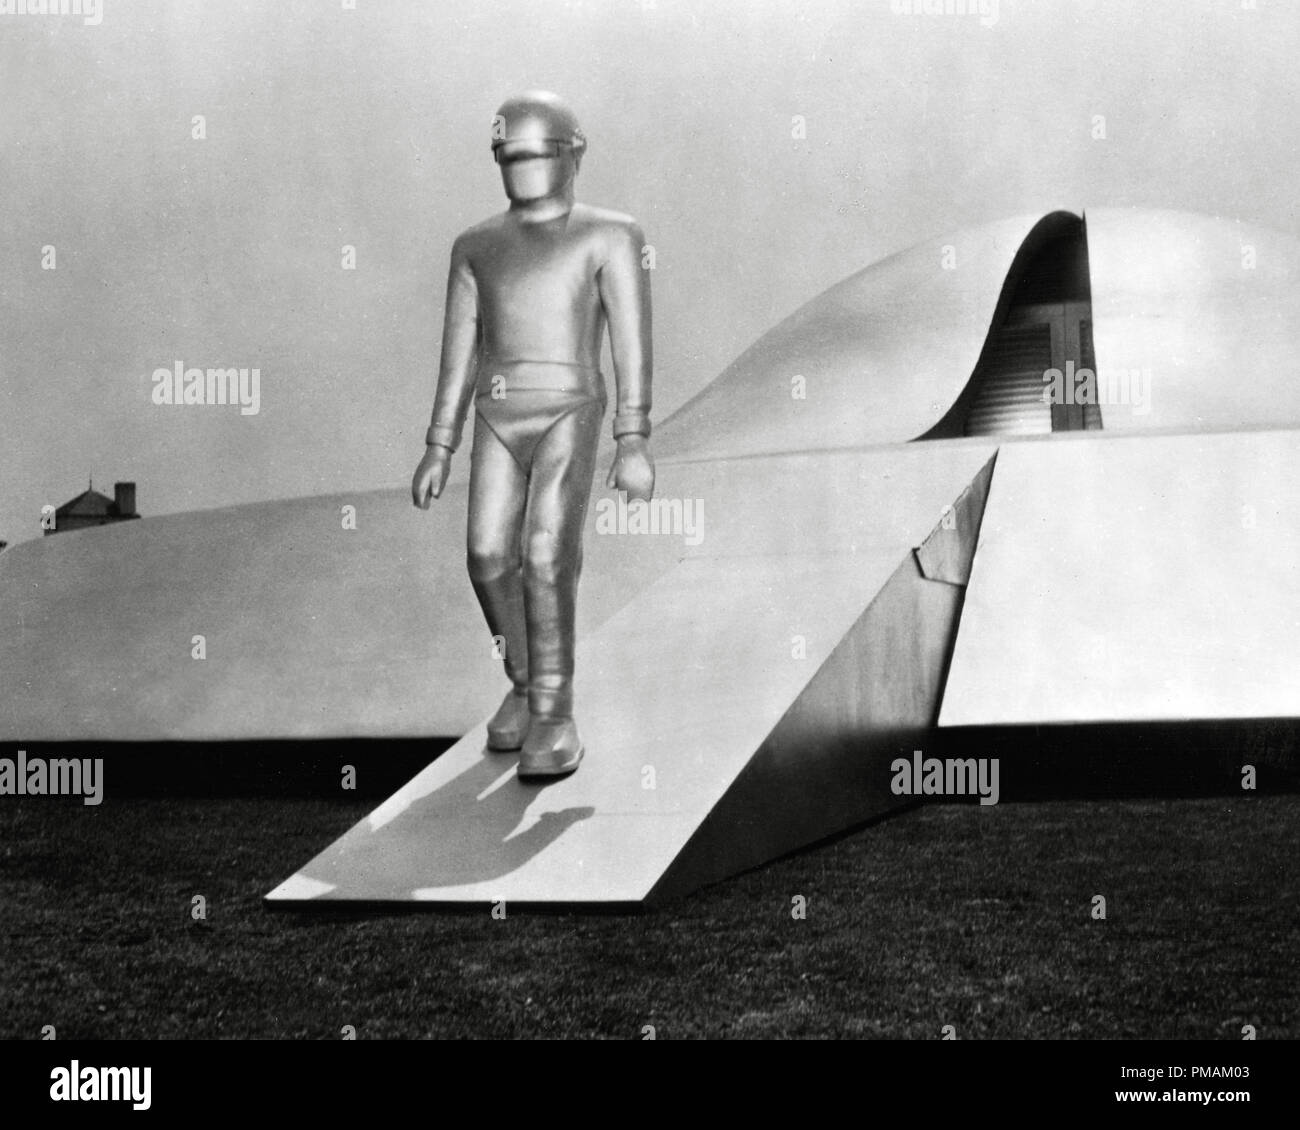 The Day The Earth Stood Still High Resolution Stock Photography and Images  - Alamy